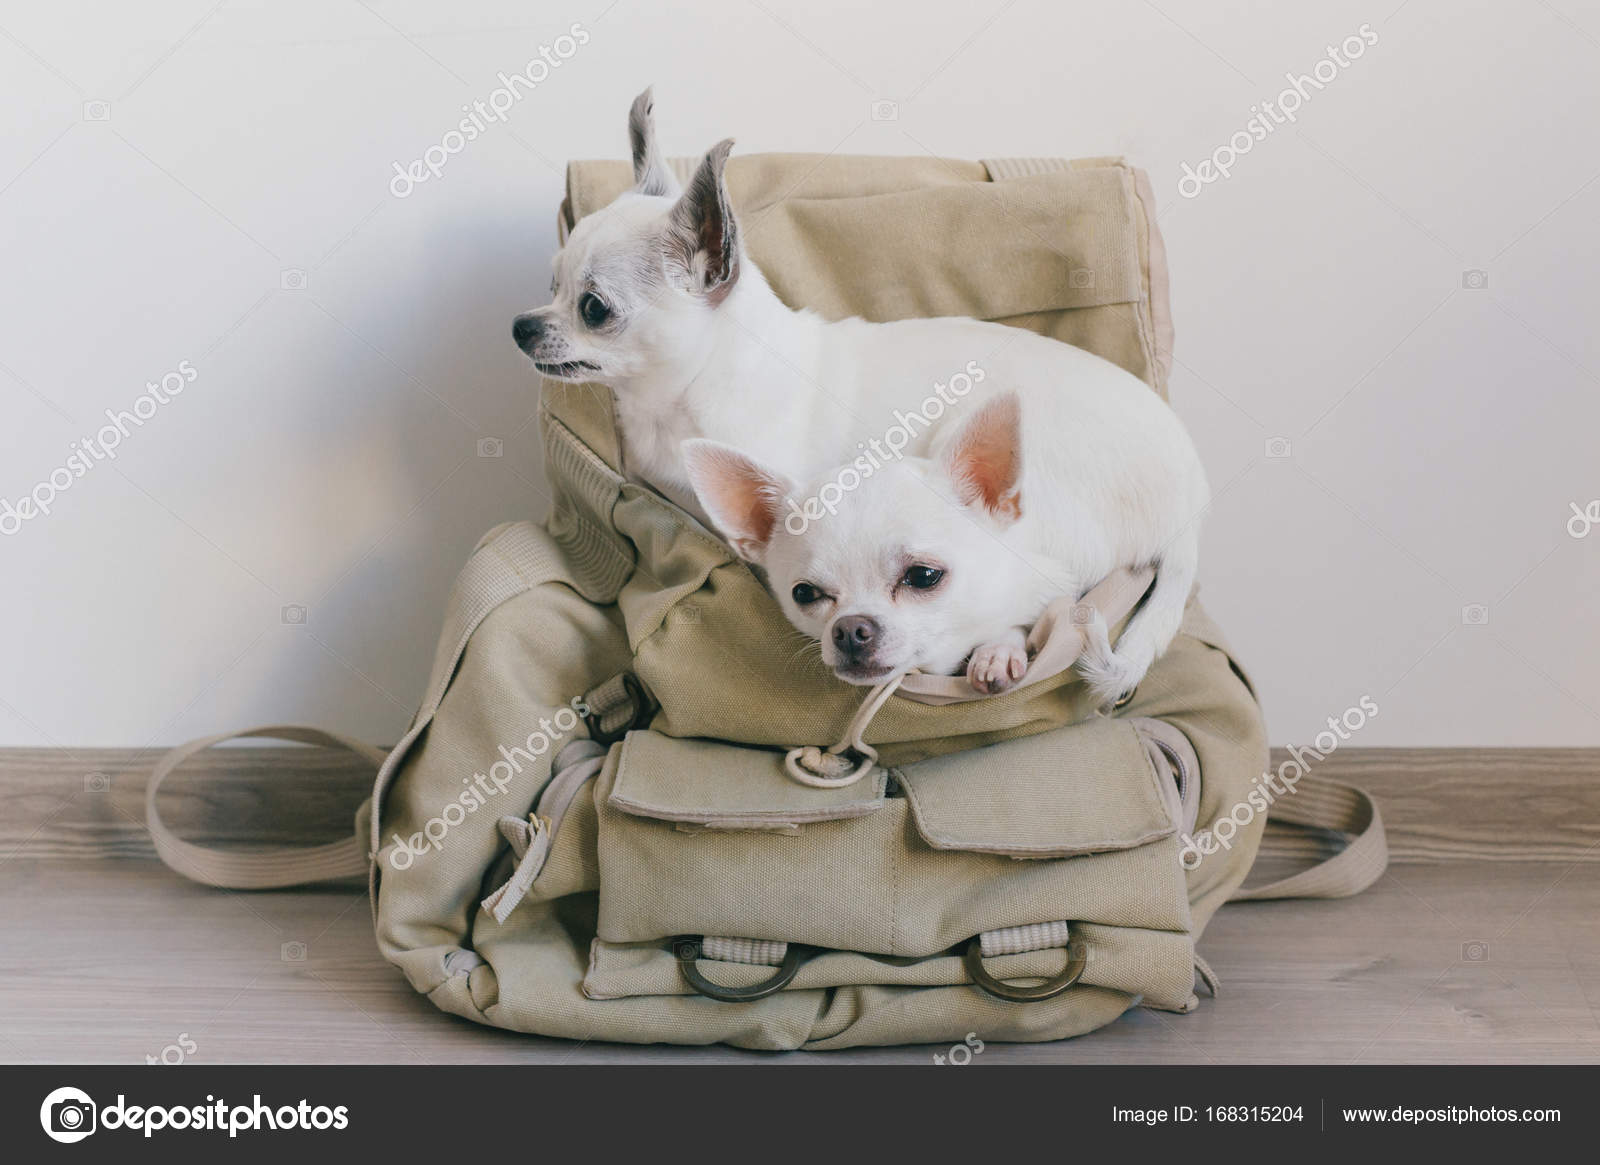 Two Chihuahua Puppies Sitting In Pocket Of Hipster Canvas Backpack With Funny Faces And Looking Different Ways Dogs Travel Comfortable Relax